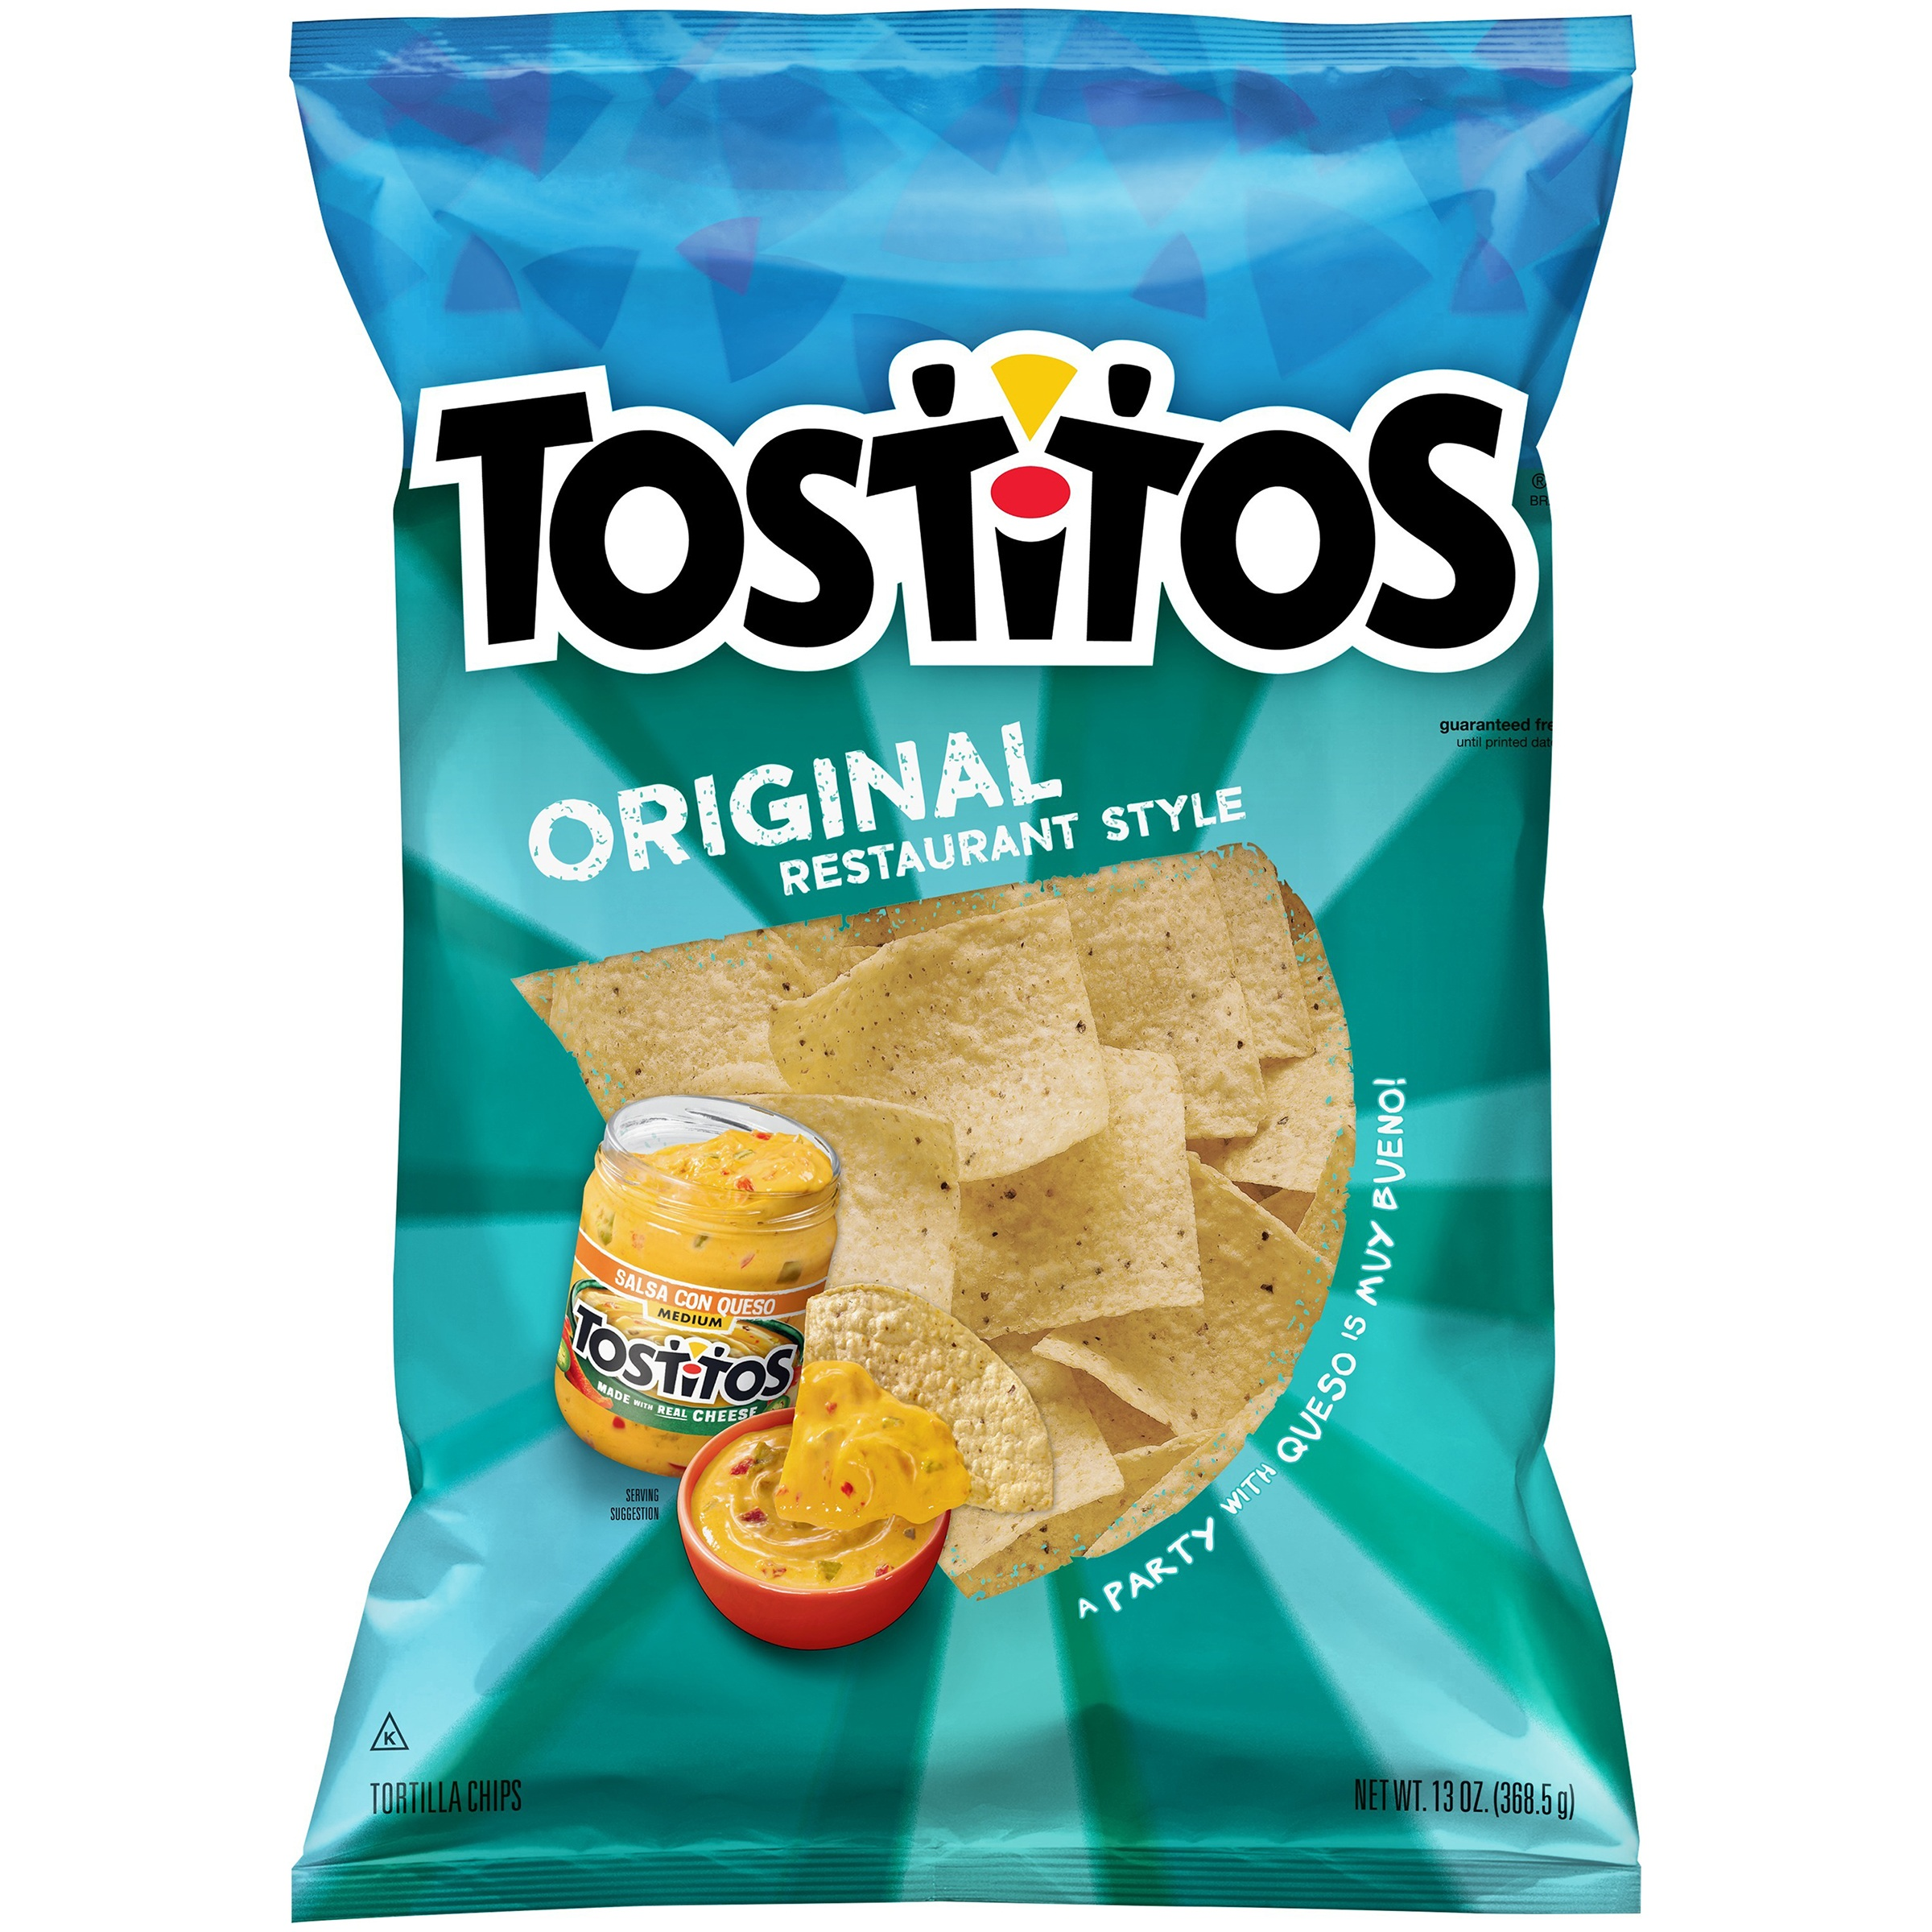 Tostitos Restaurant Style Tortilla Chips, 13 Oz (Pack of 3)